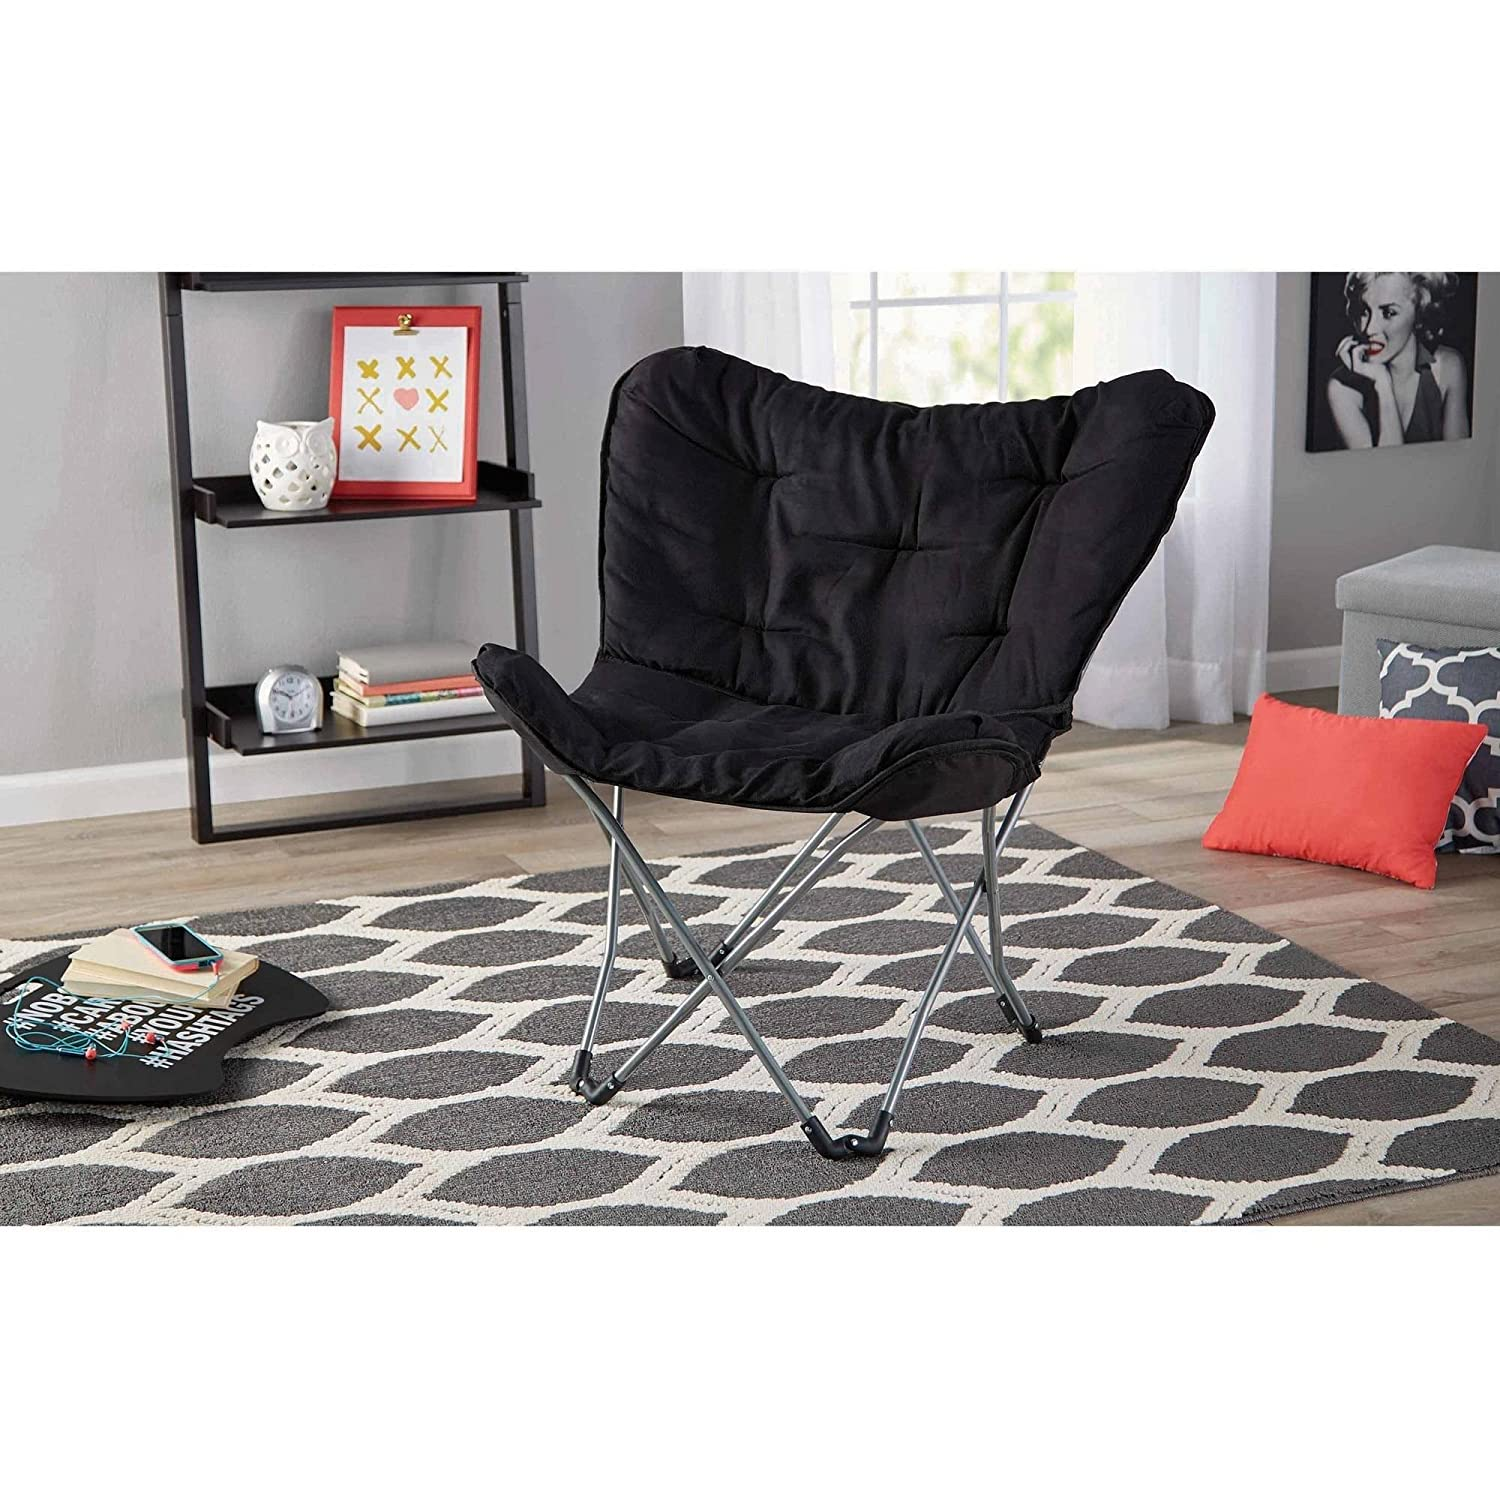 Butterfly chair black - Amazon Com Mainstays Collapsible Butterfly Chair With Soft Microsuede Fabric Black 1 Kitchen Dining